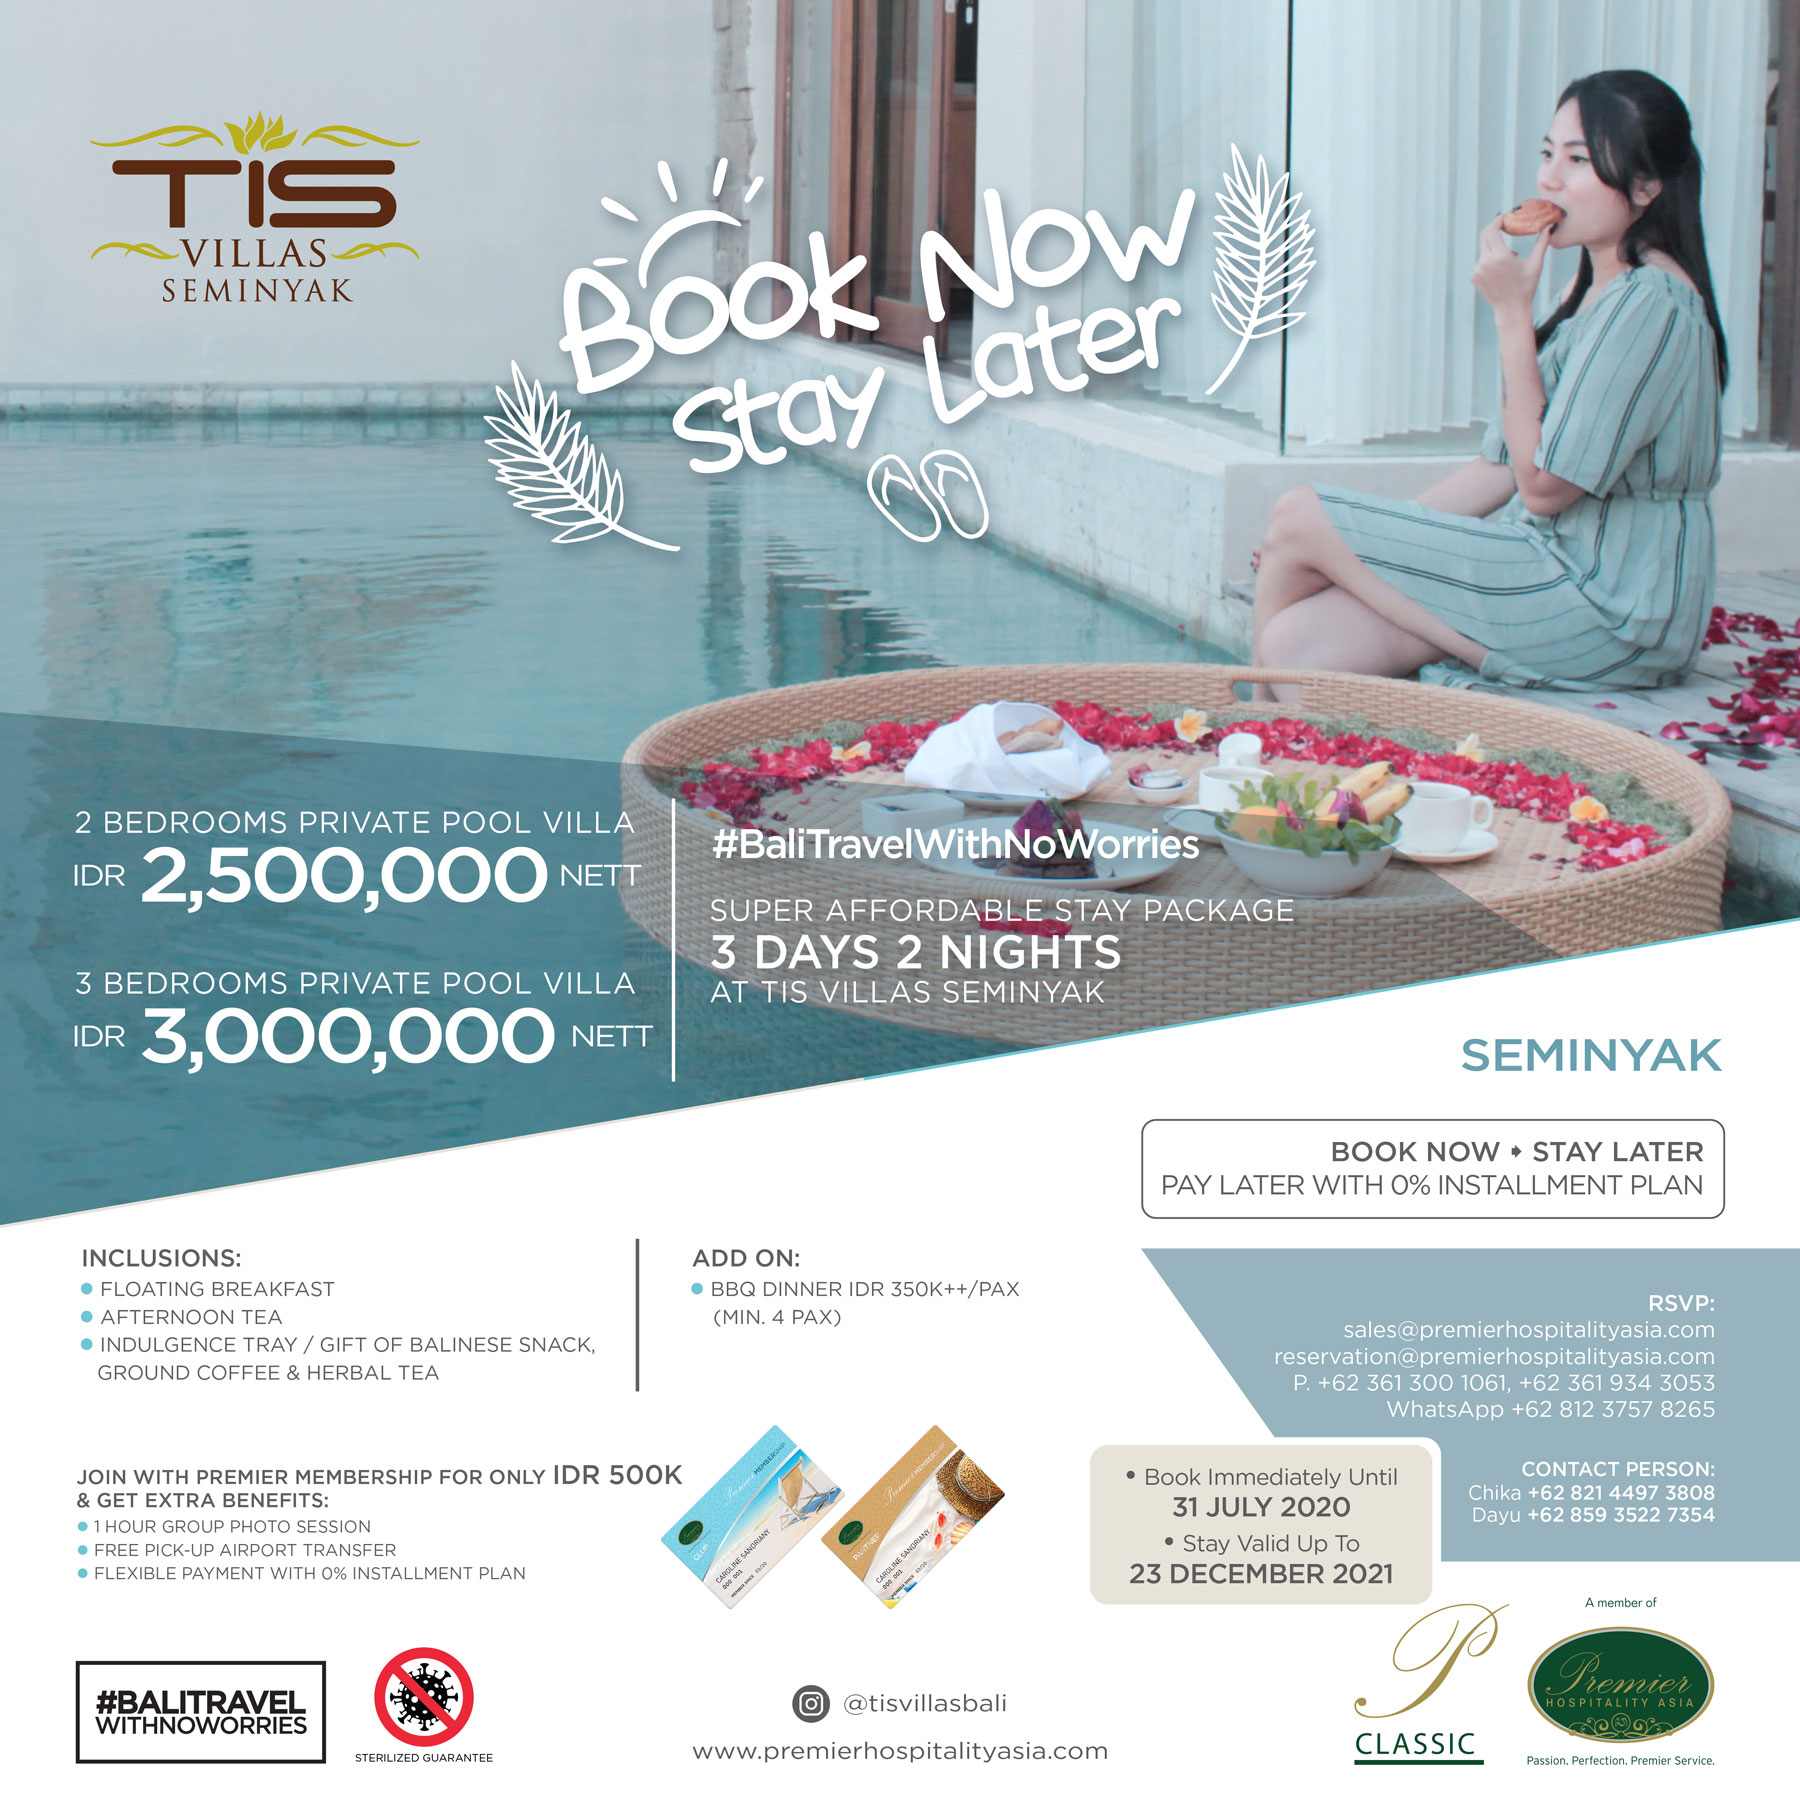 tis-villas-seminyak-3-bedroom-pool-villa-book-now-stay-later-promo-bali-villa-by-premier-hospitality-asia